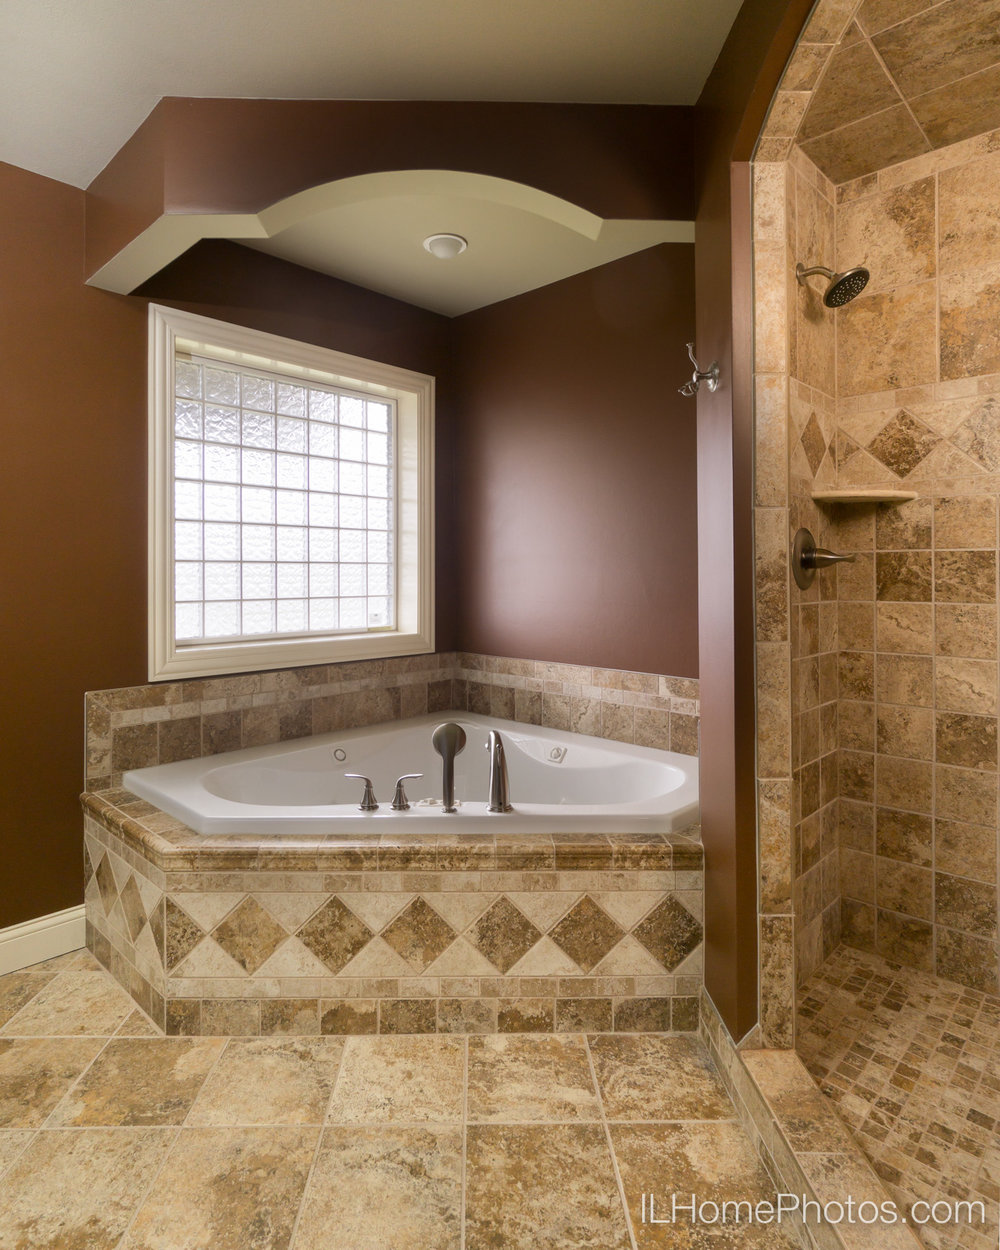 Interior master bathroom photograph for real estate :: Illinois Home Photography by Michael Gowin, Lincoln, IL